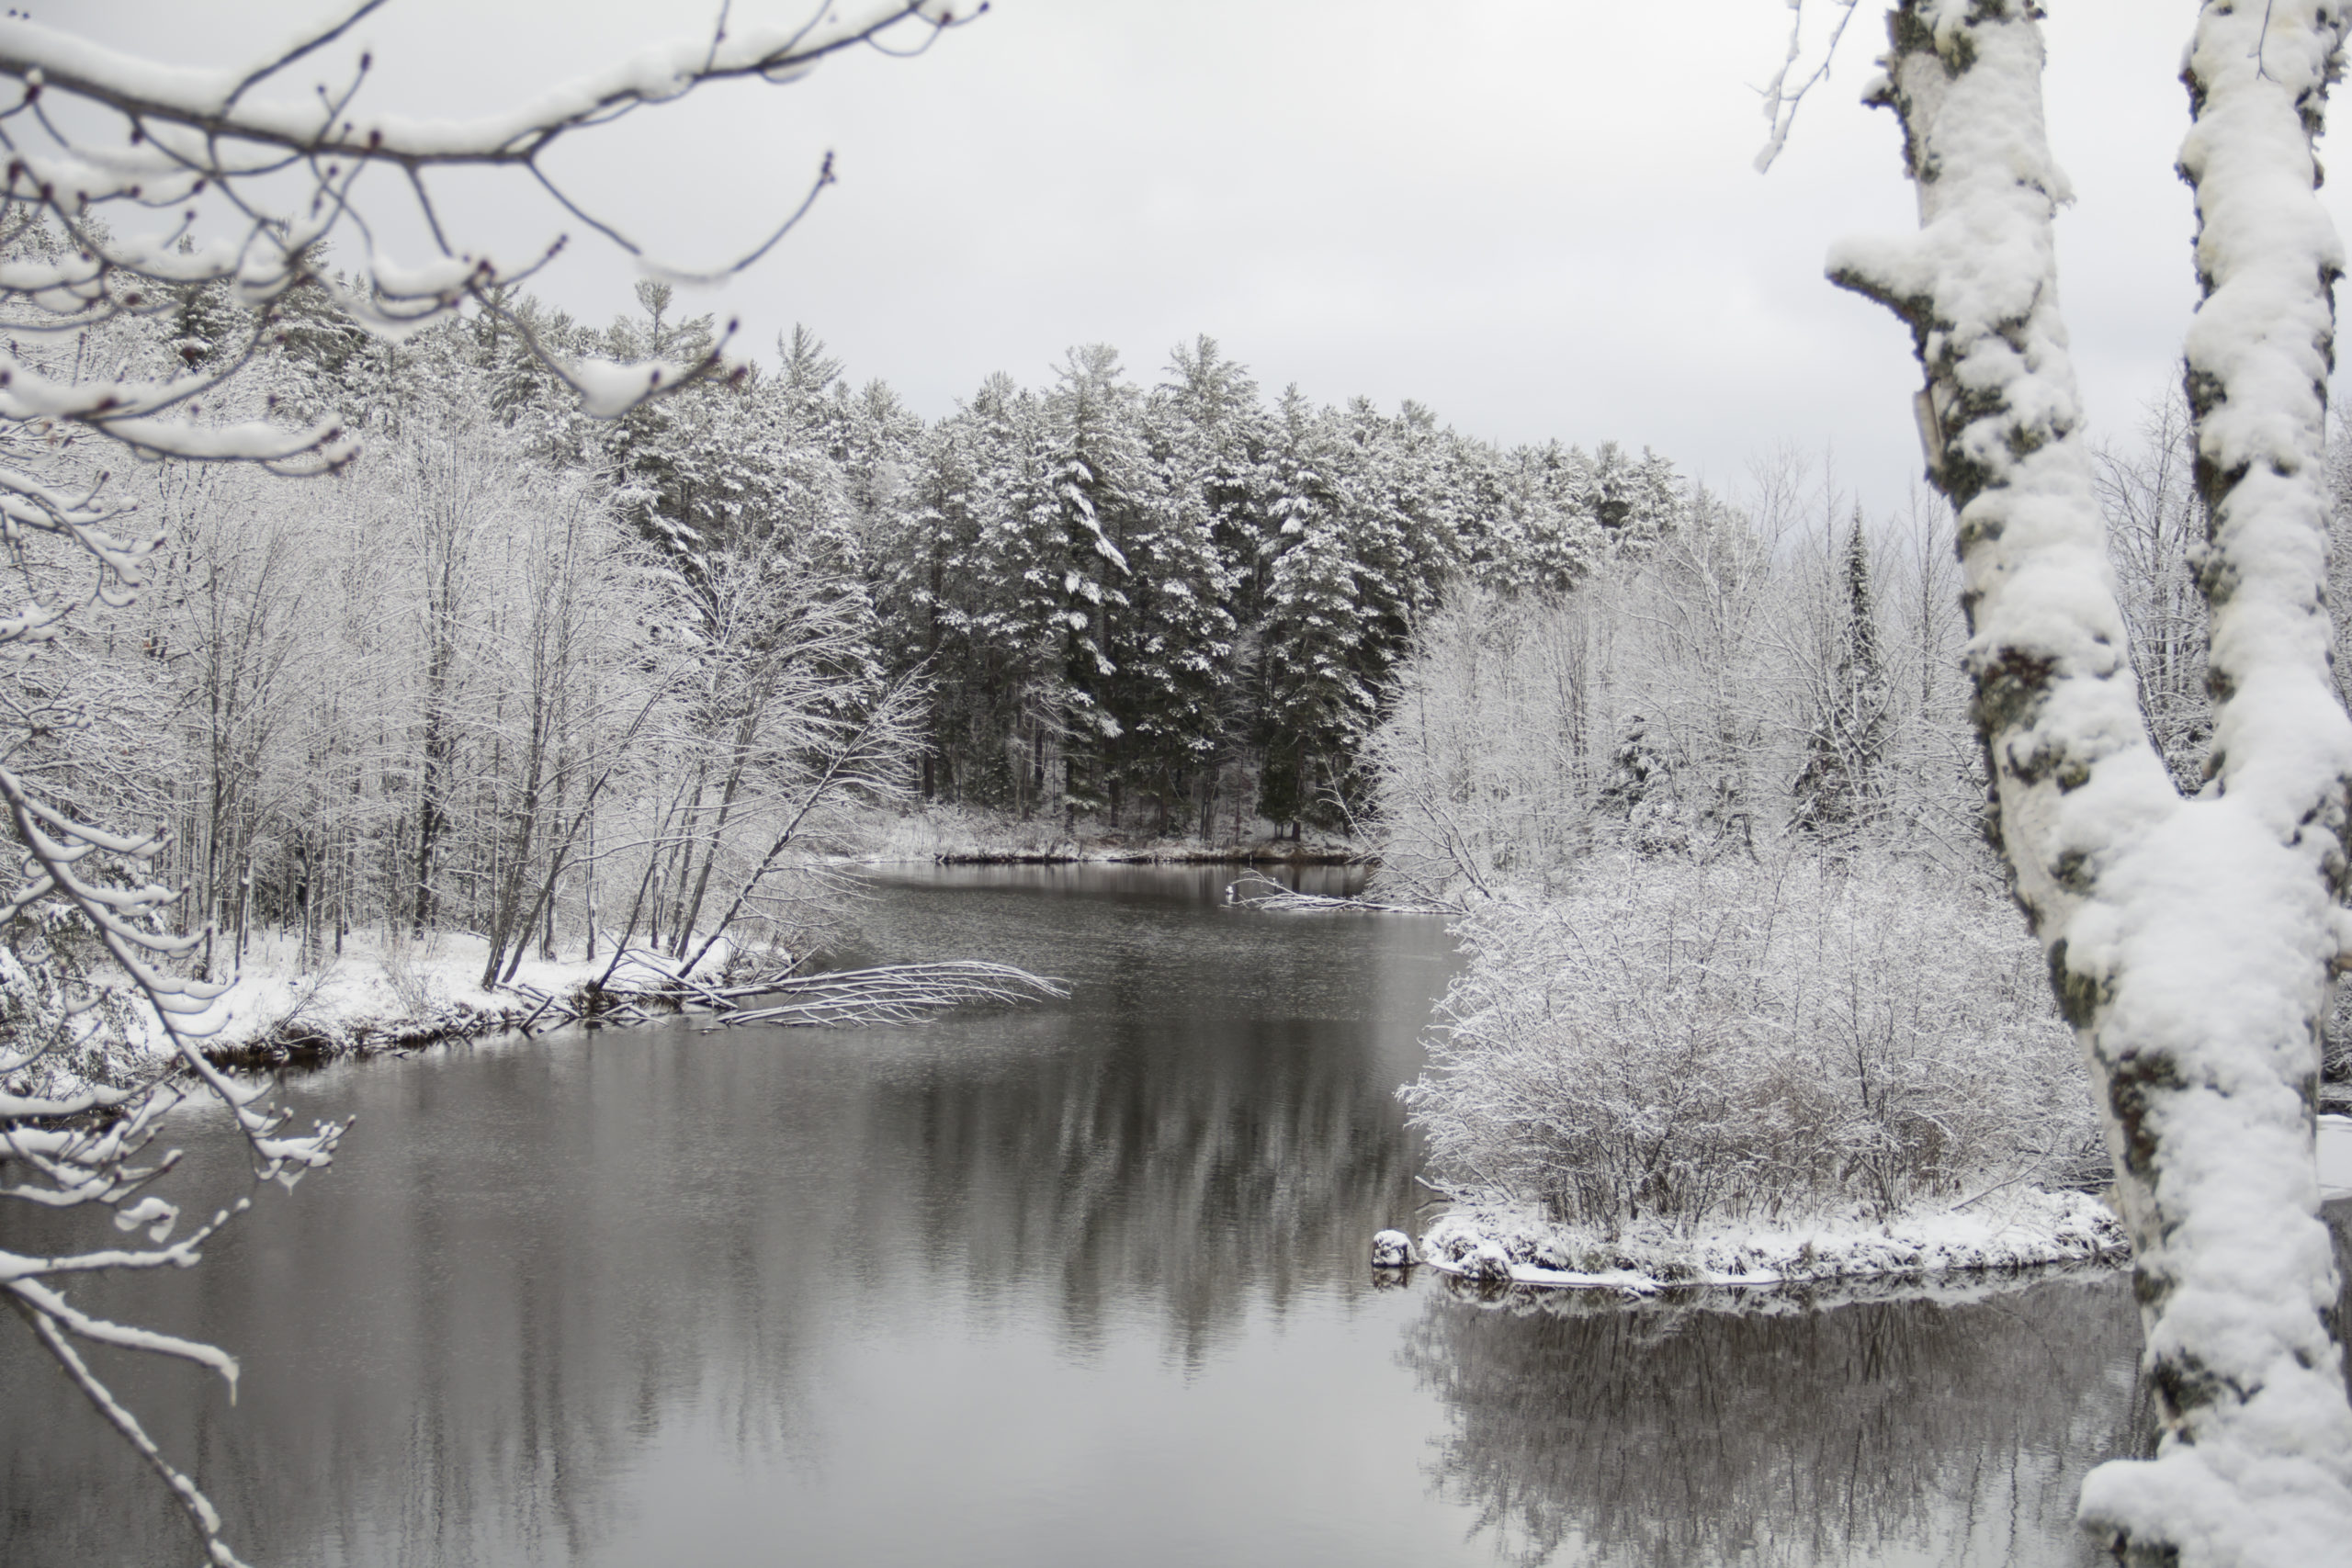 Snowy-River-No-Crop-scaled Attention to Detail in Snowy Scenes with MCP Actions